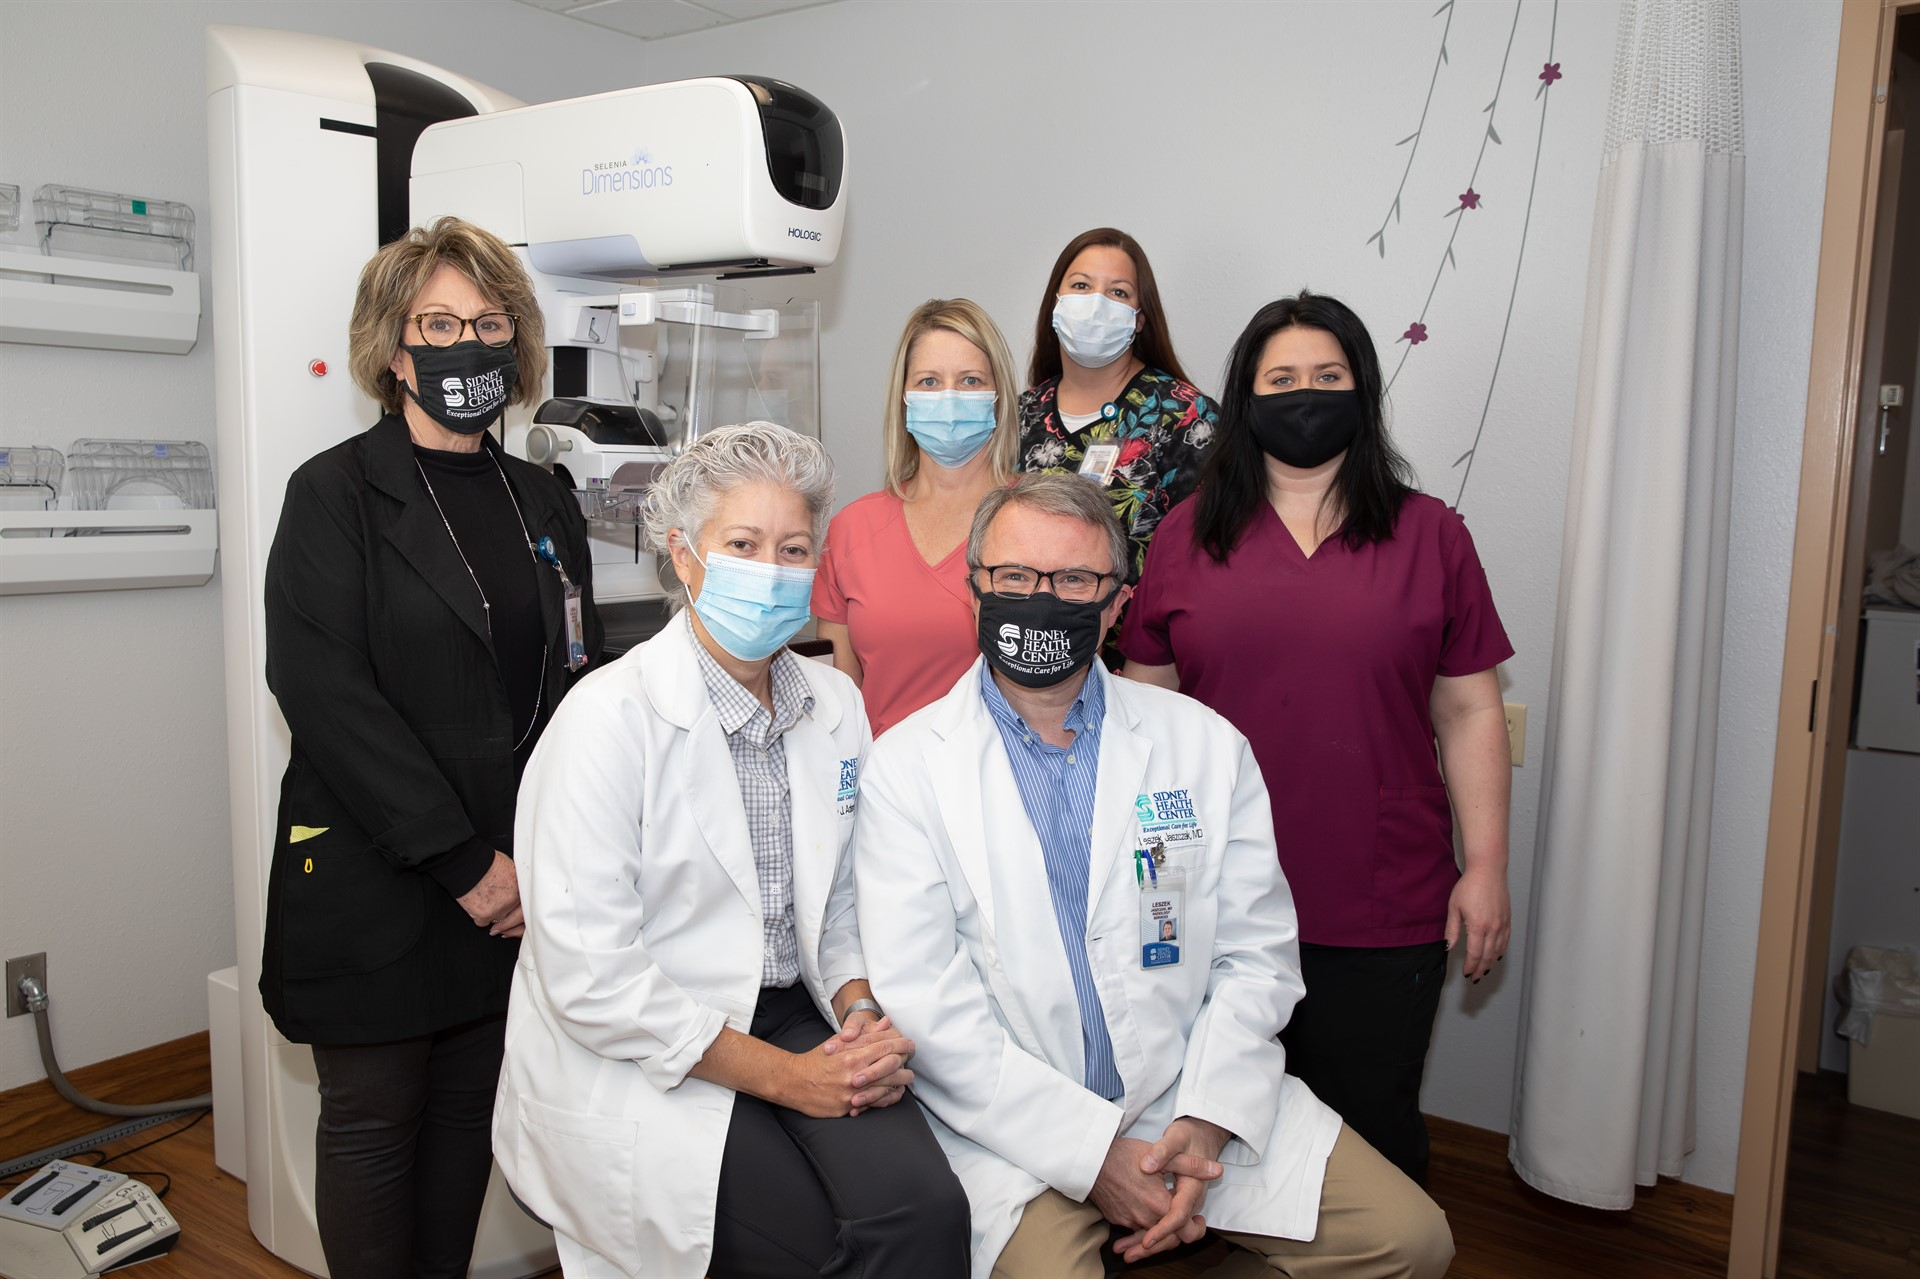 Early detection important for breast health